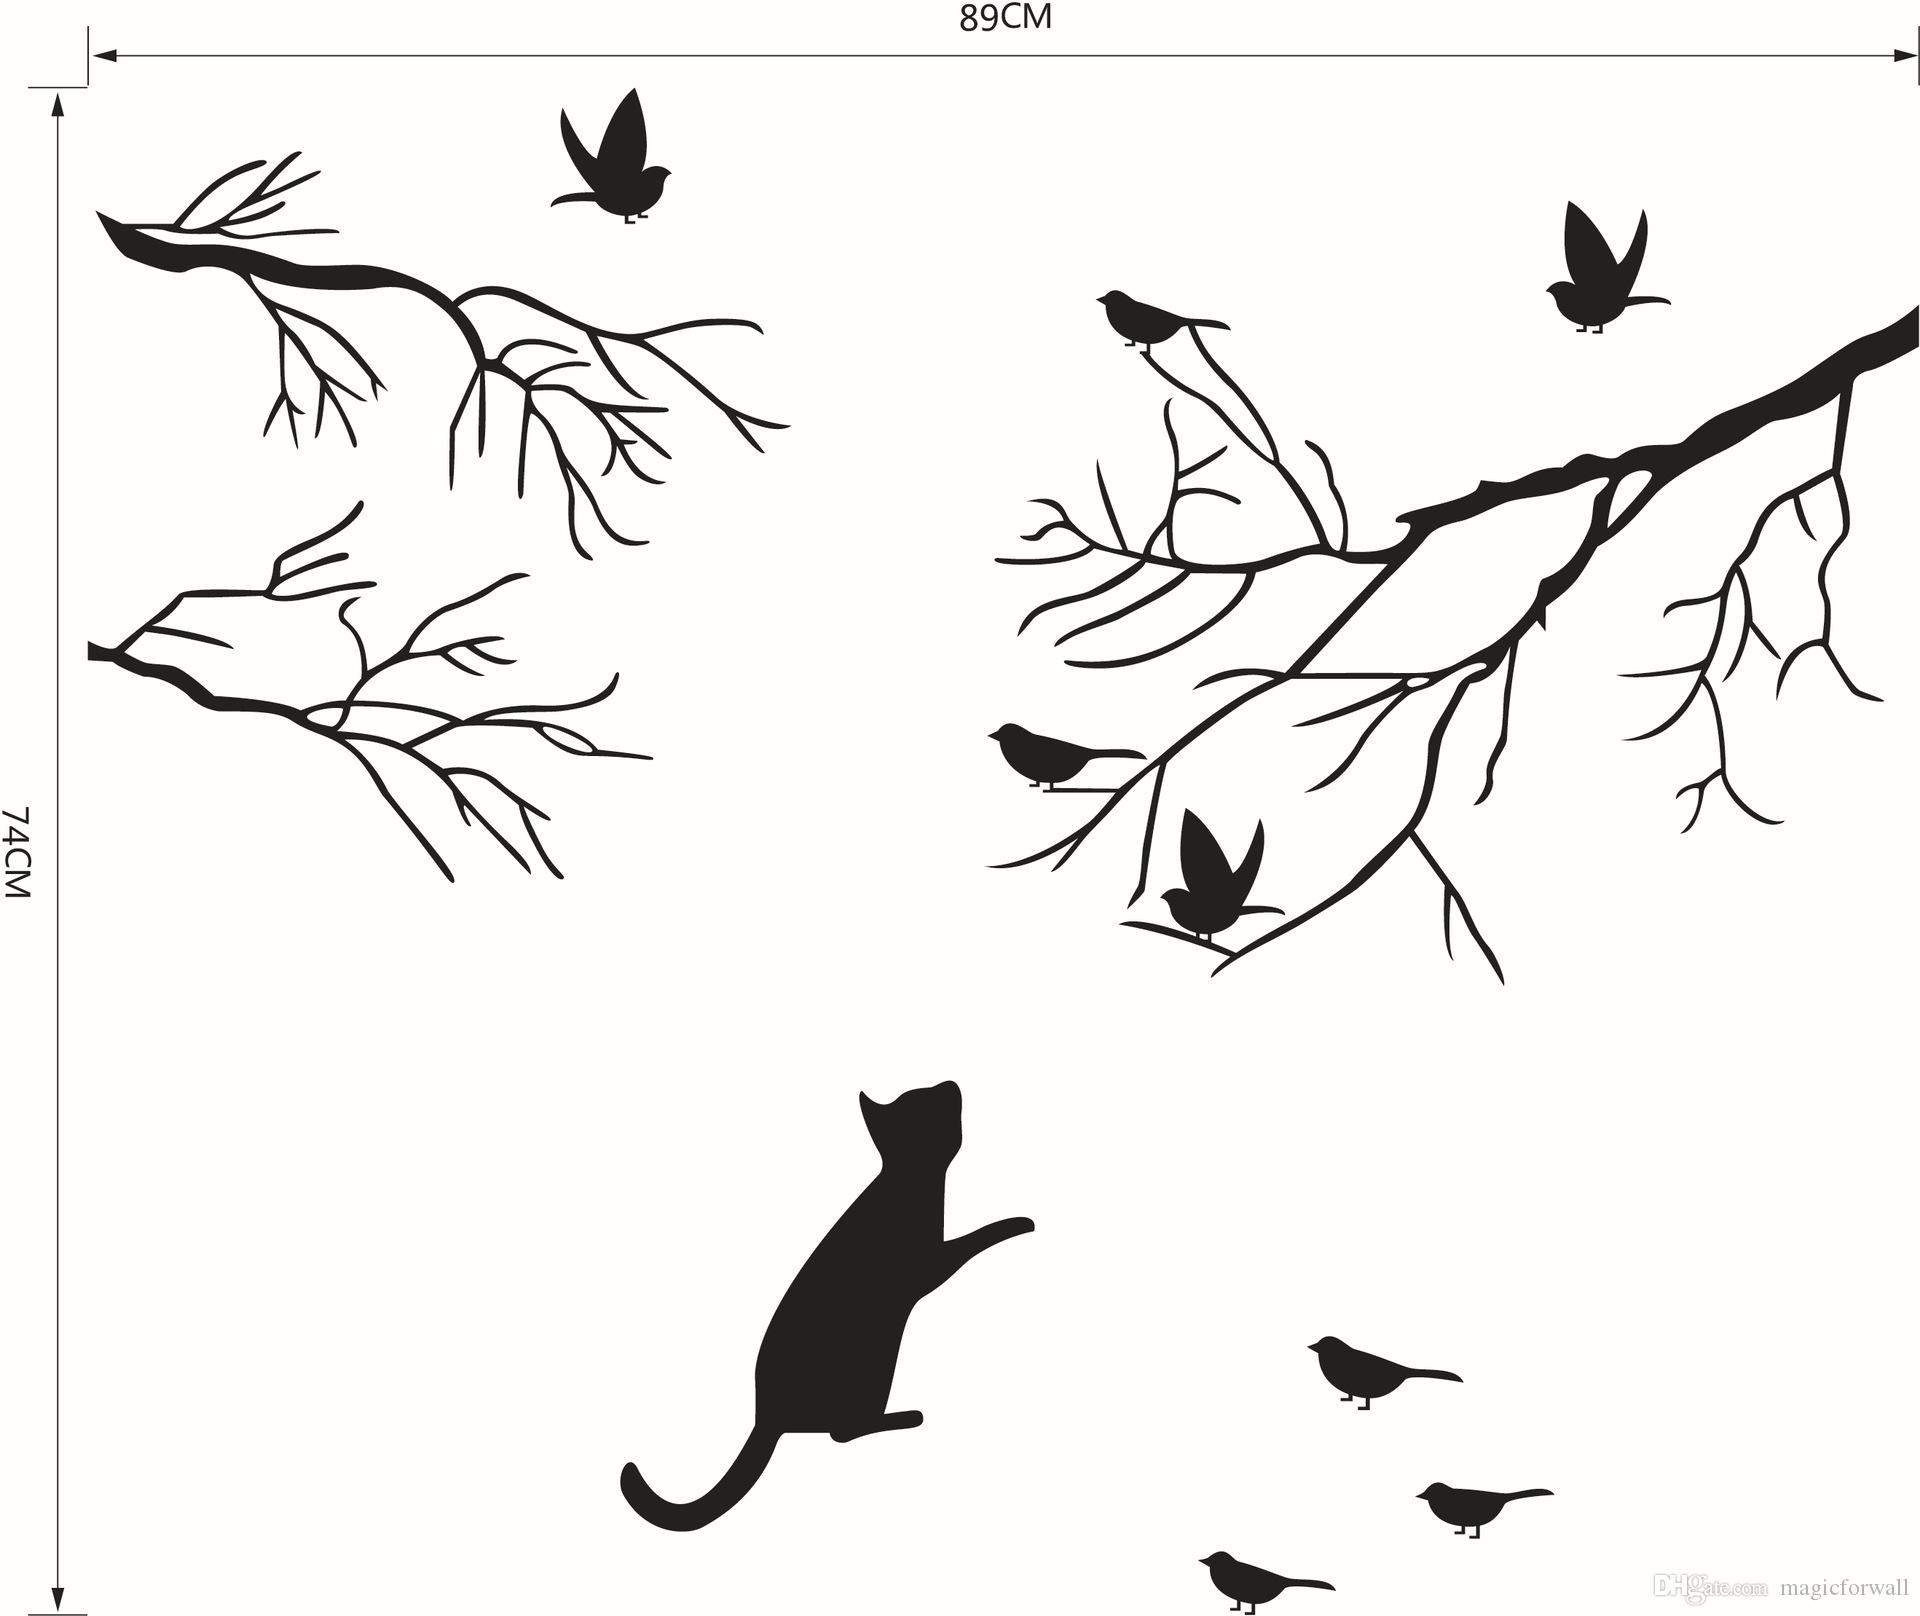 Cat Chasing the birds under the tree wall decal sticker Black Bird on the Tree Branch Wall Art Mural Poster Window Glass Wall Decoration Art